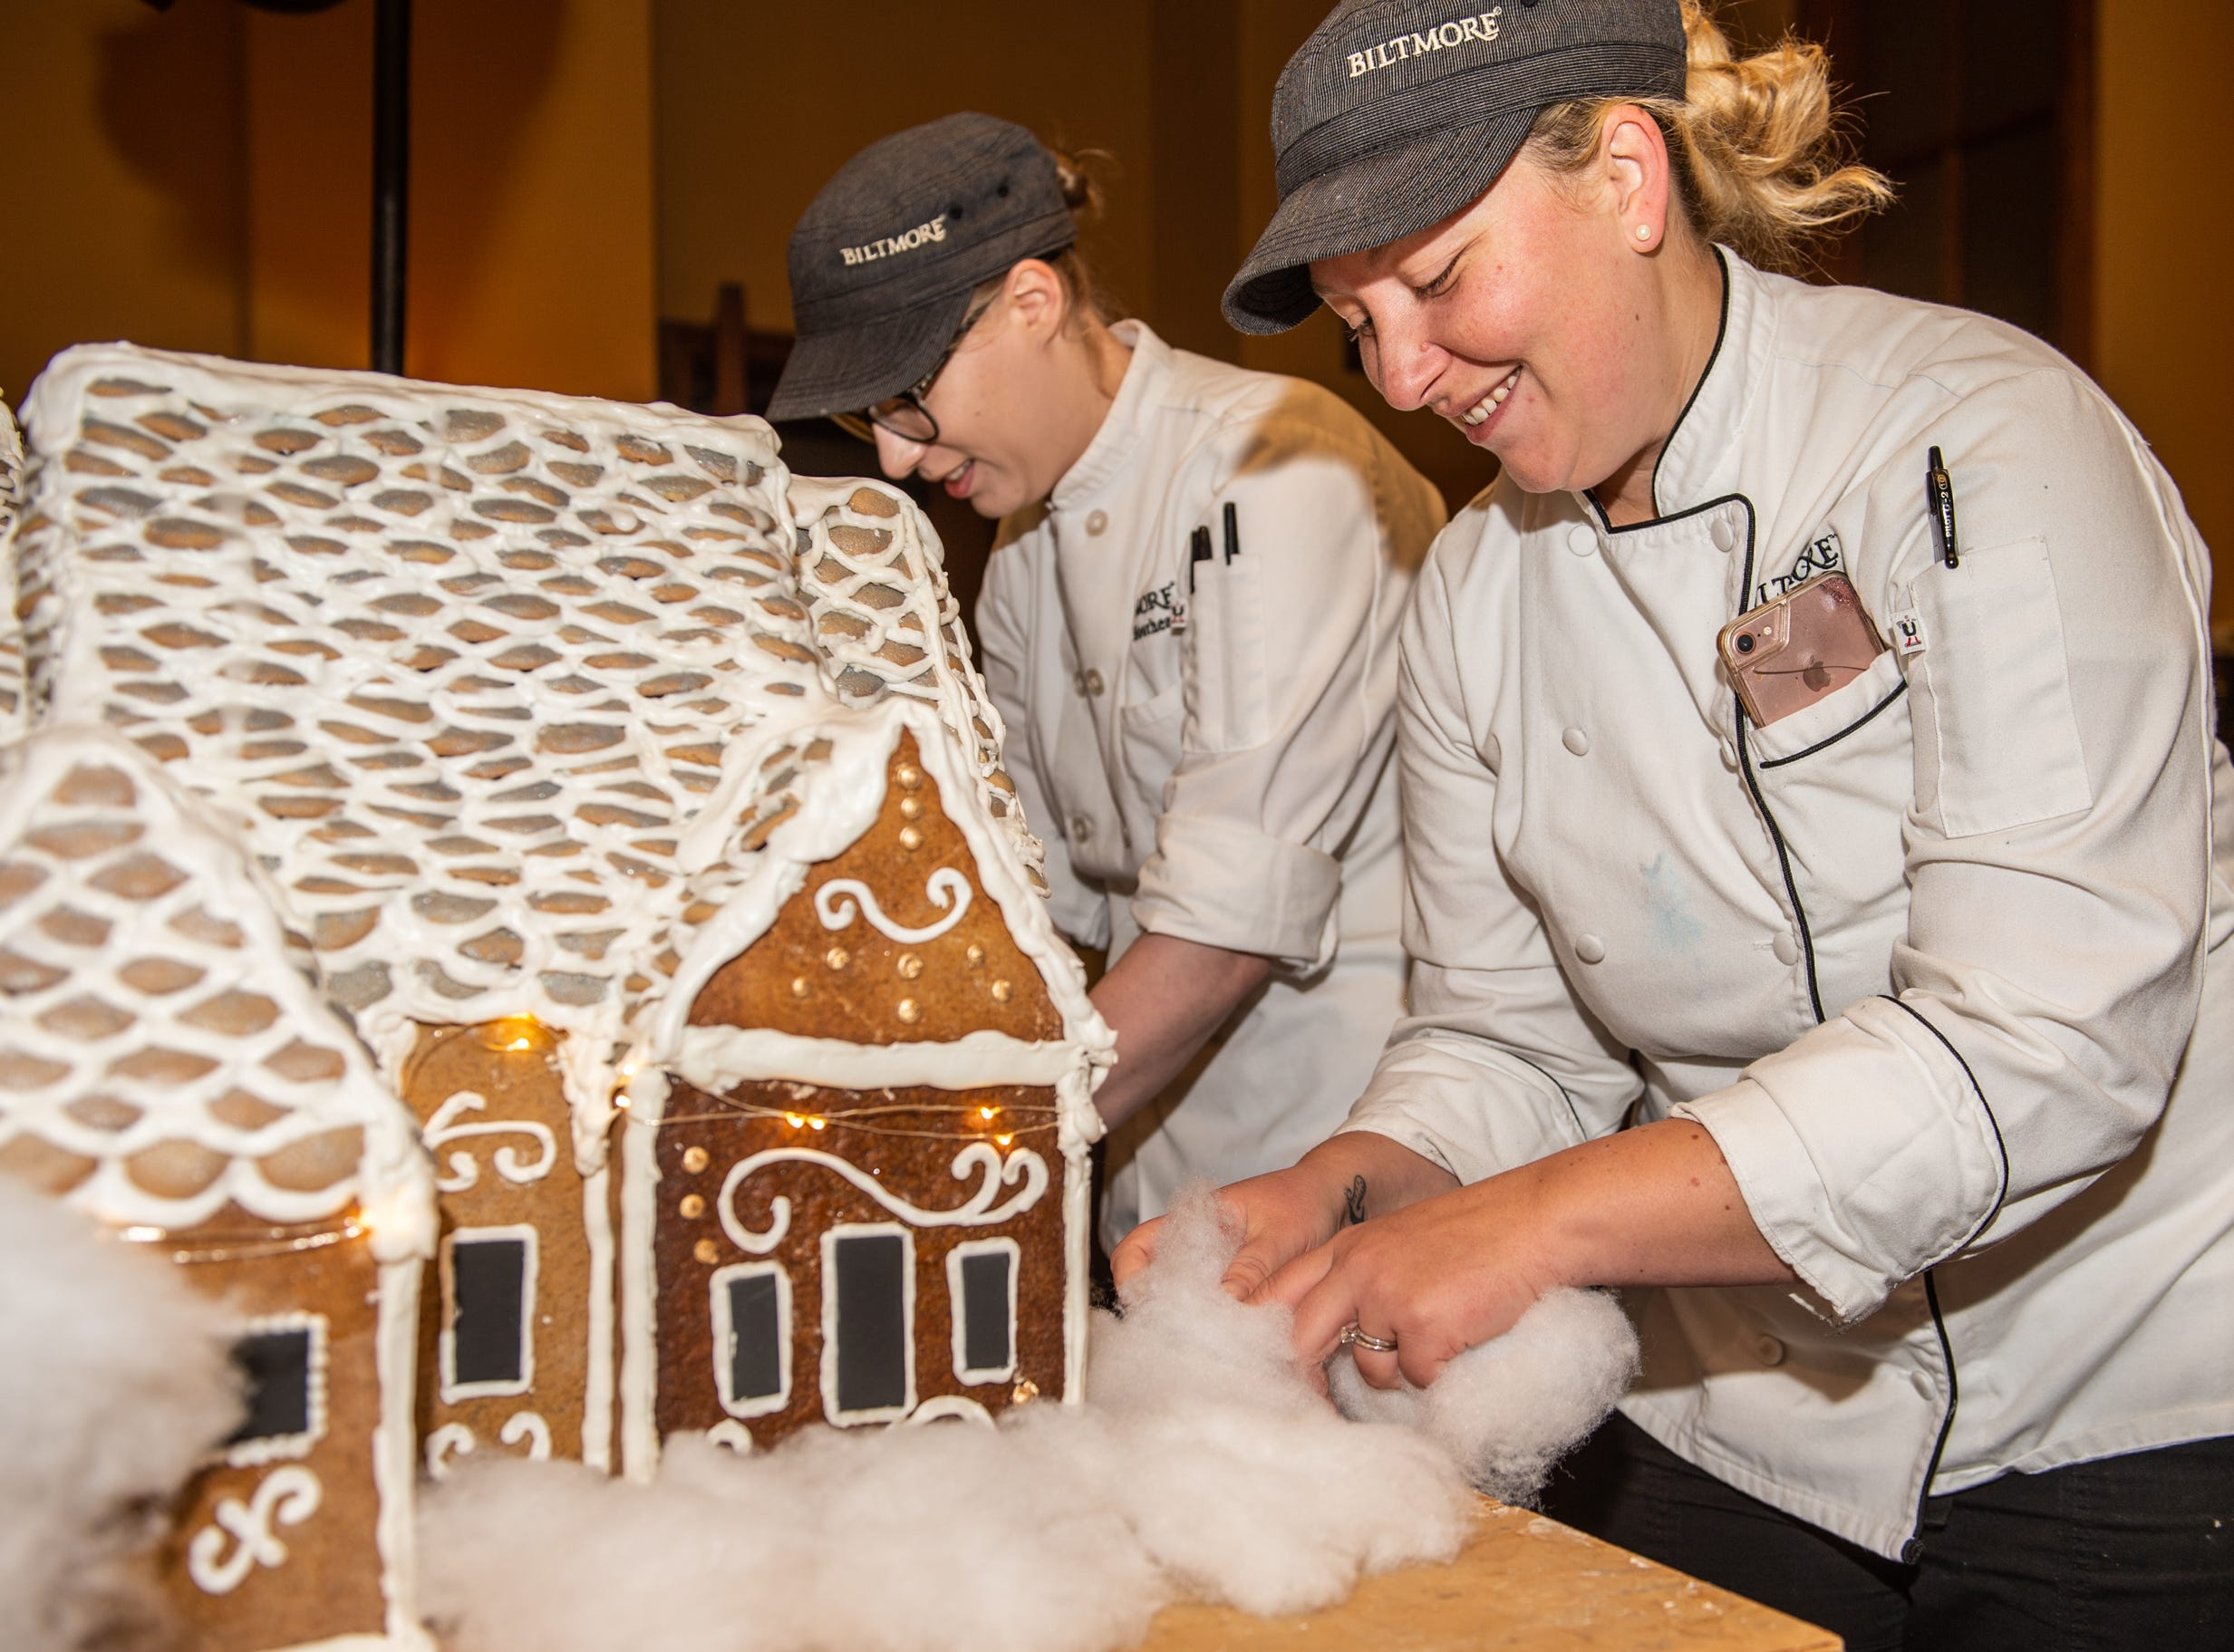 Biltmore pastry chef Julie Scheibel, right, and pastry demi chef Megan Moorhead, left, position cotton snow around the base of the gingerbread house in the Biltmore House kitchen the morning of Nov. 2, 2018.